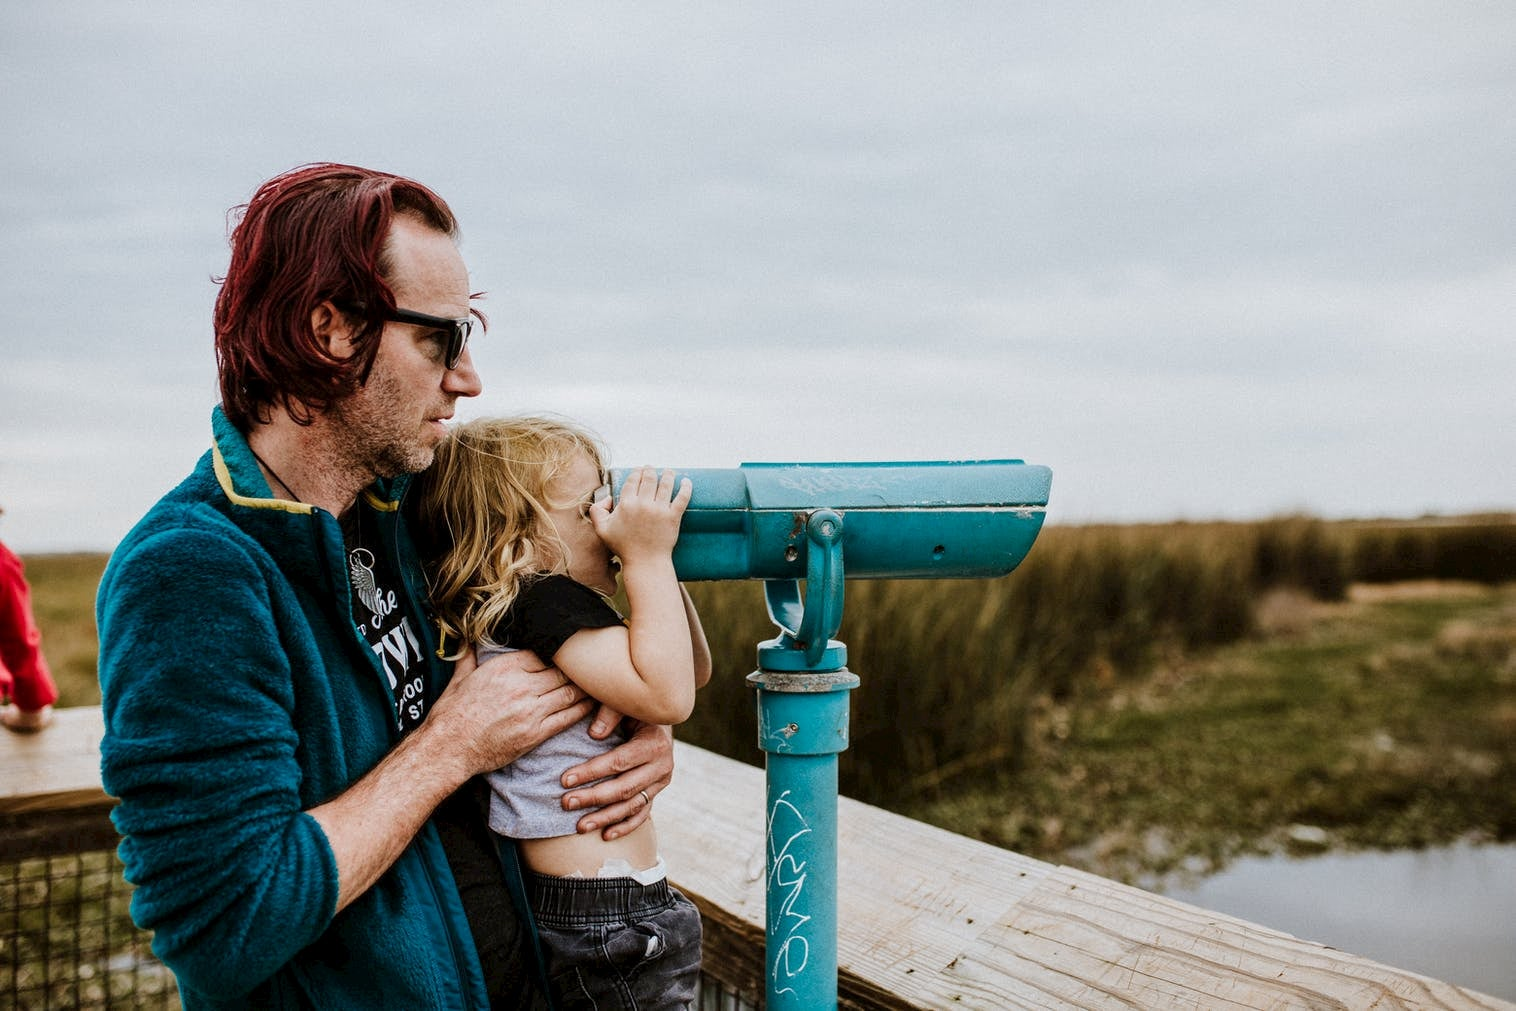 Father holding his child up to a telescope looking out over a prairie landscape